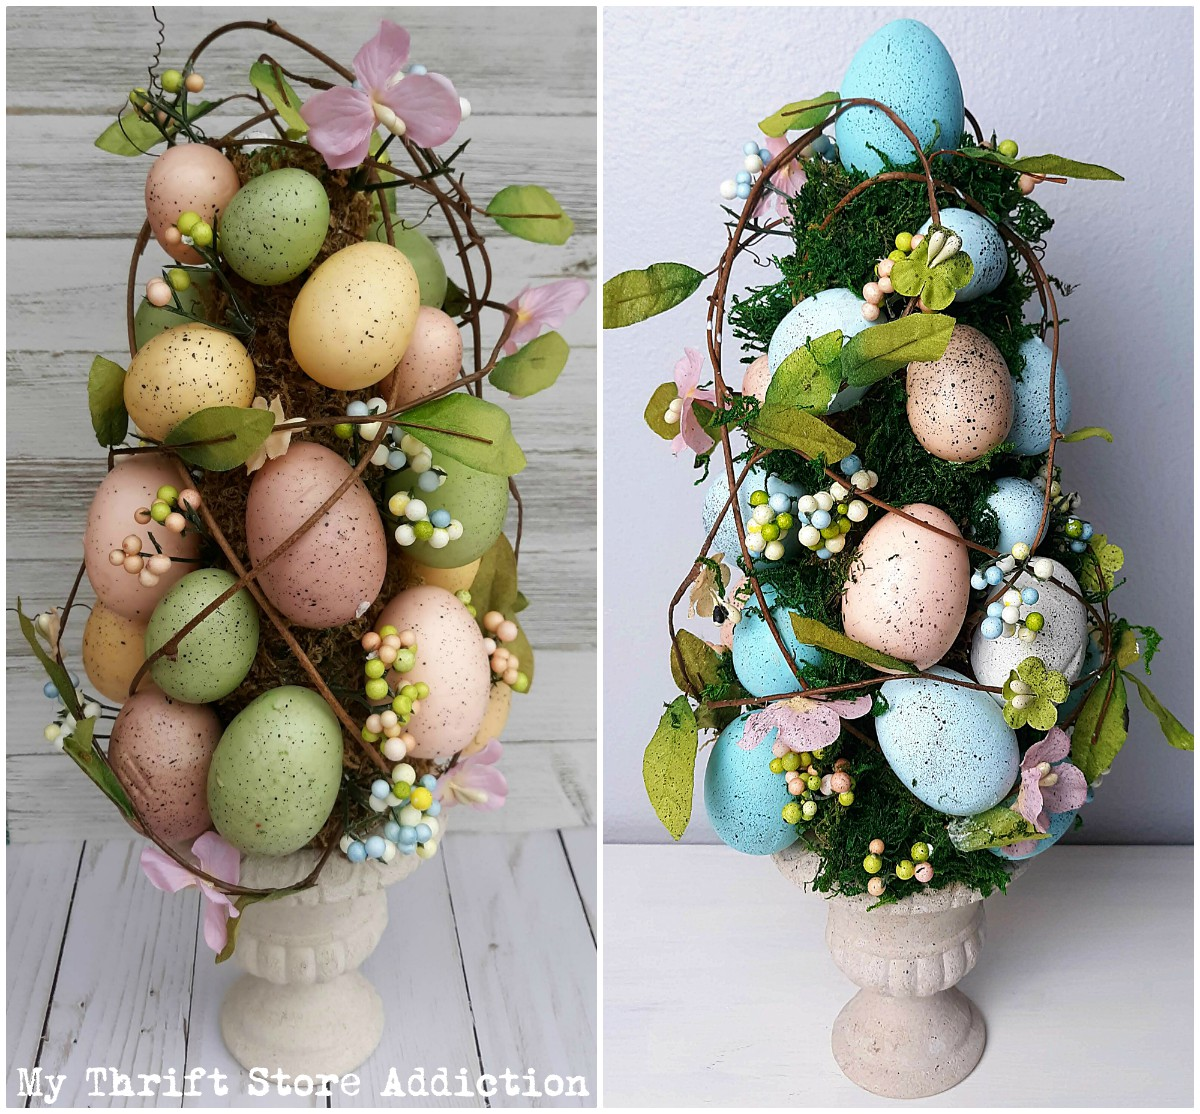 upcycled Easter decor